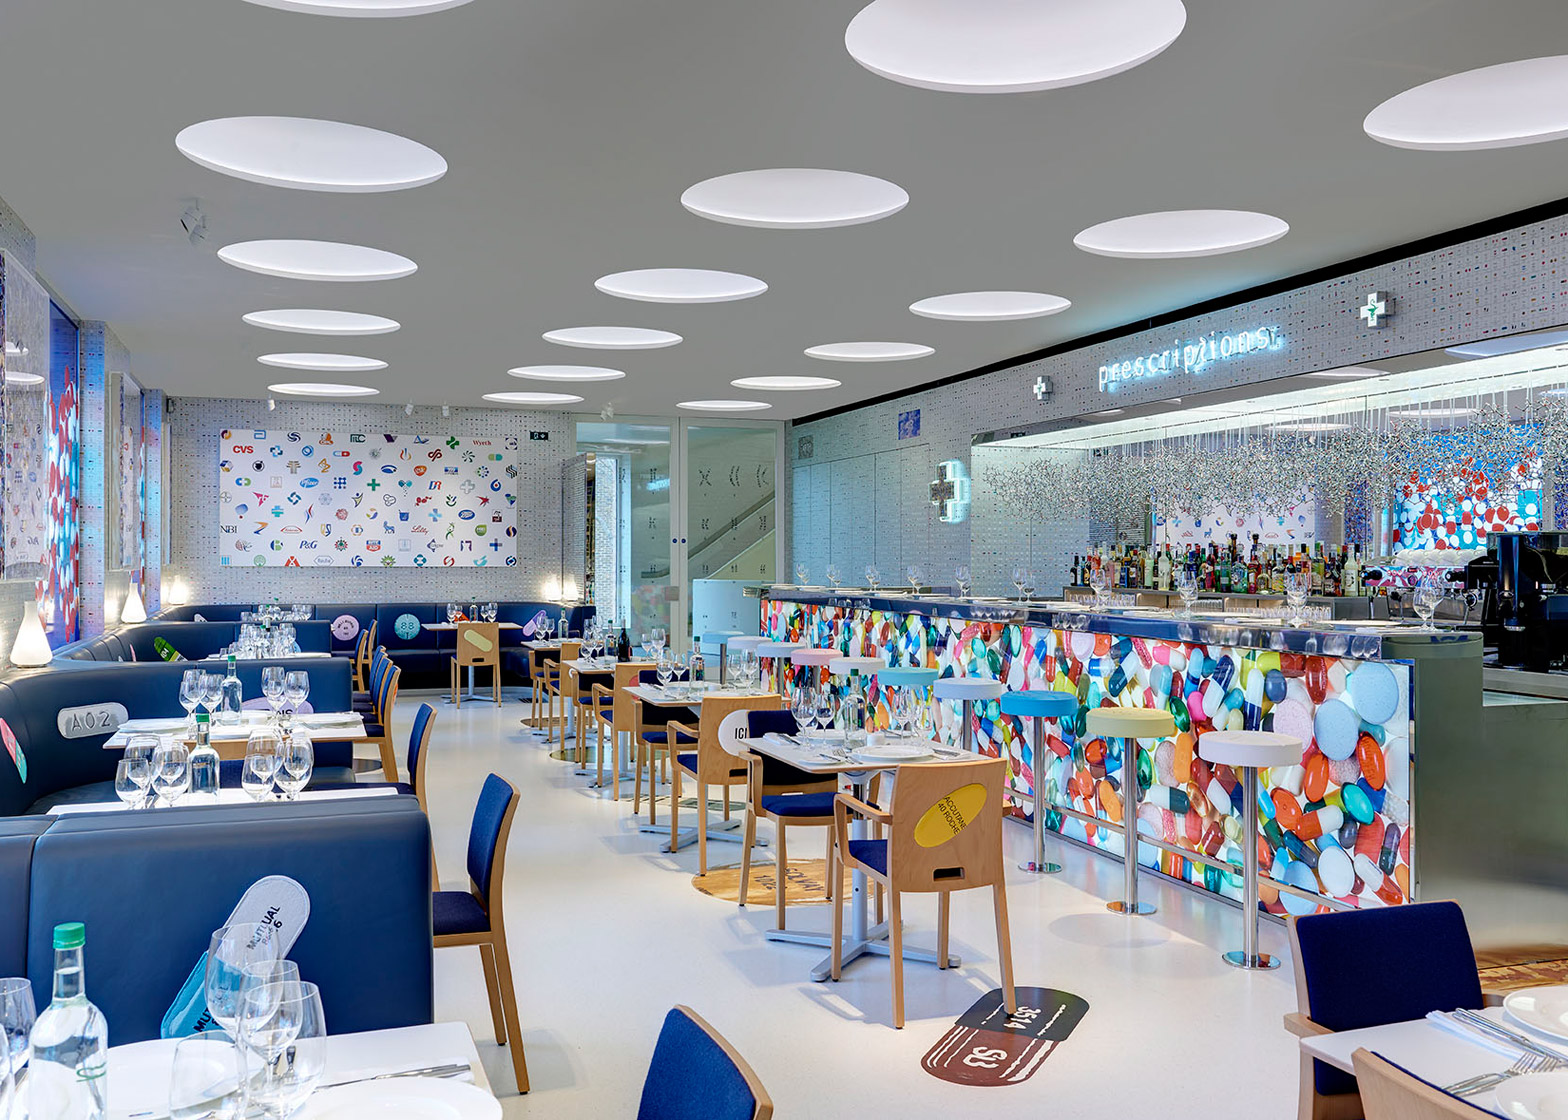 Damian Hirst and chef Mark Hix launch Pharmacy 2 restaurant